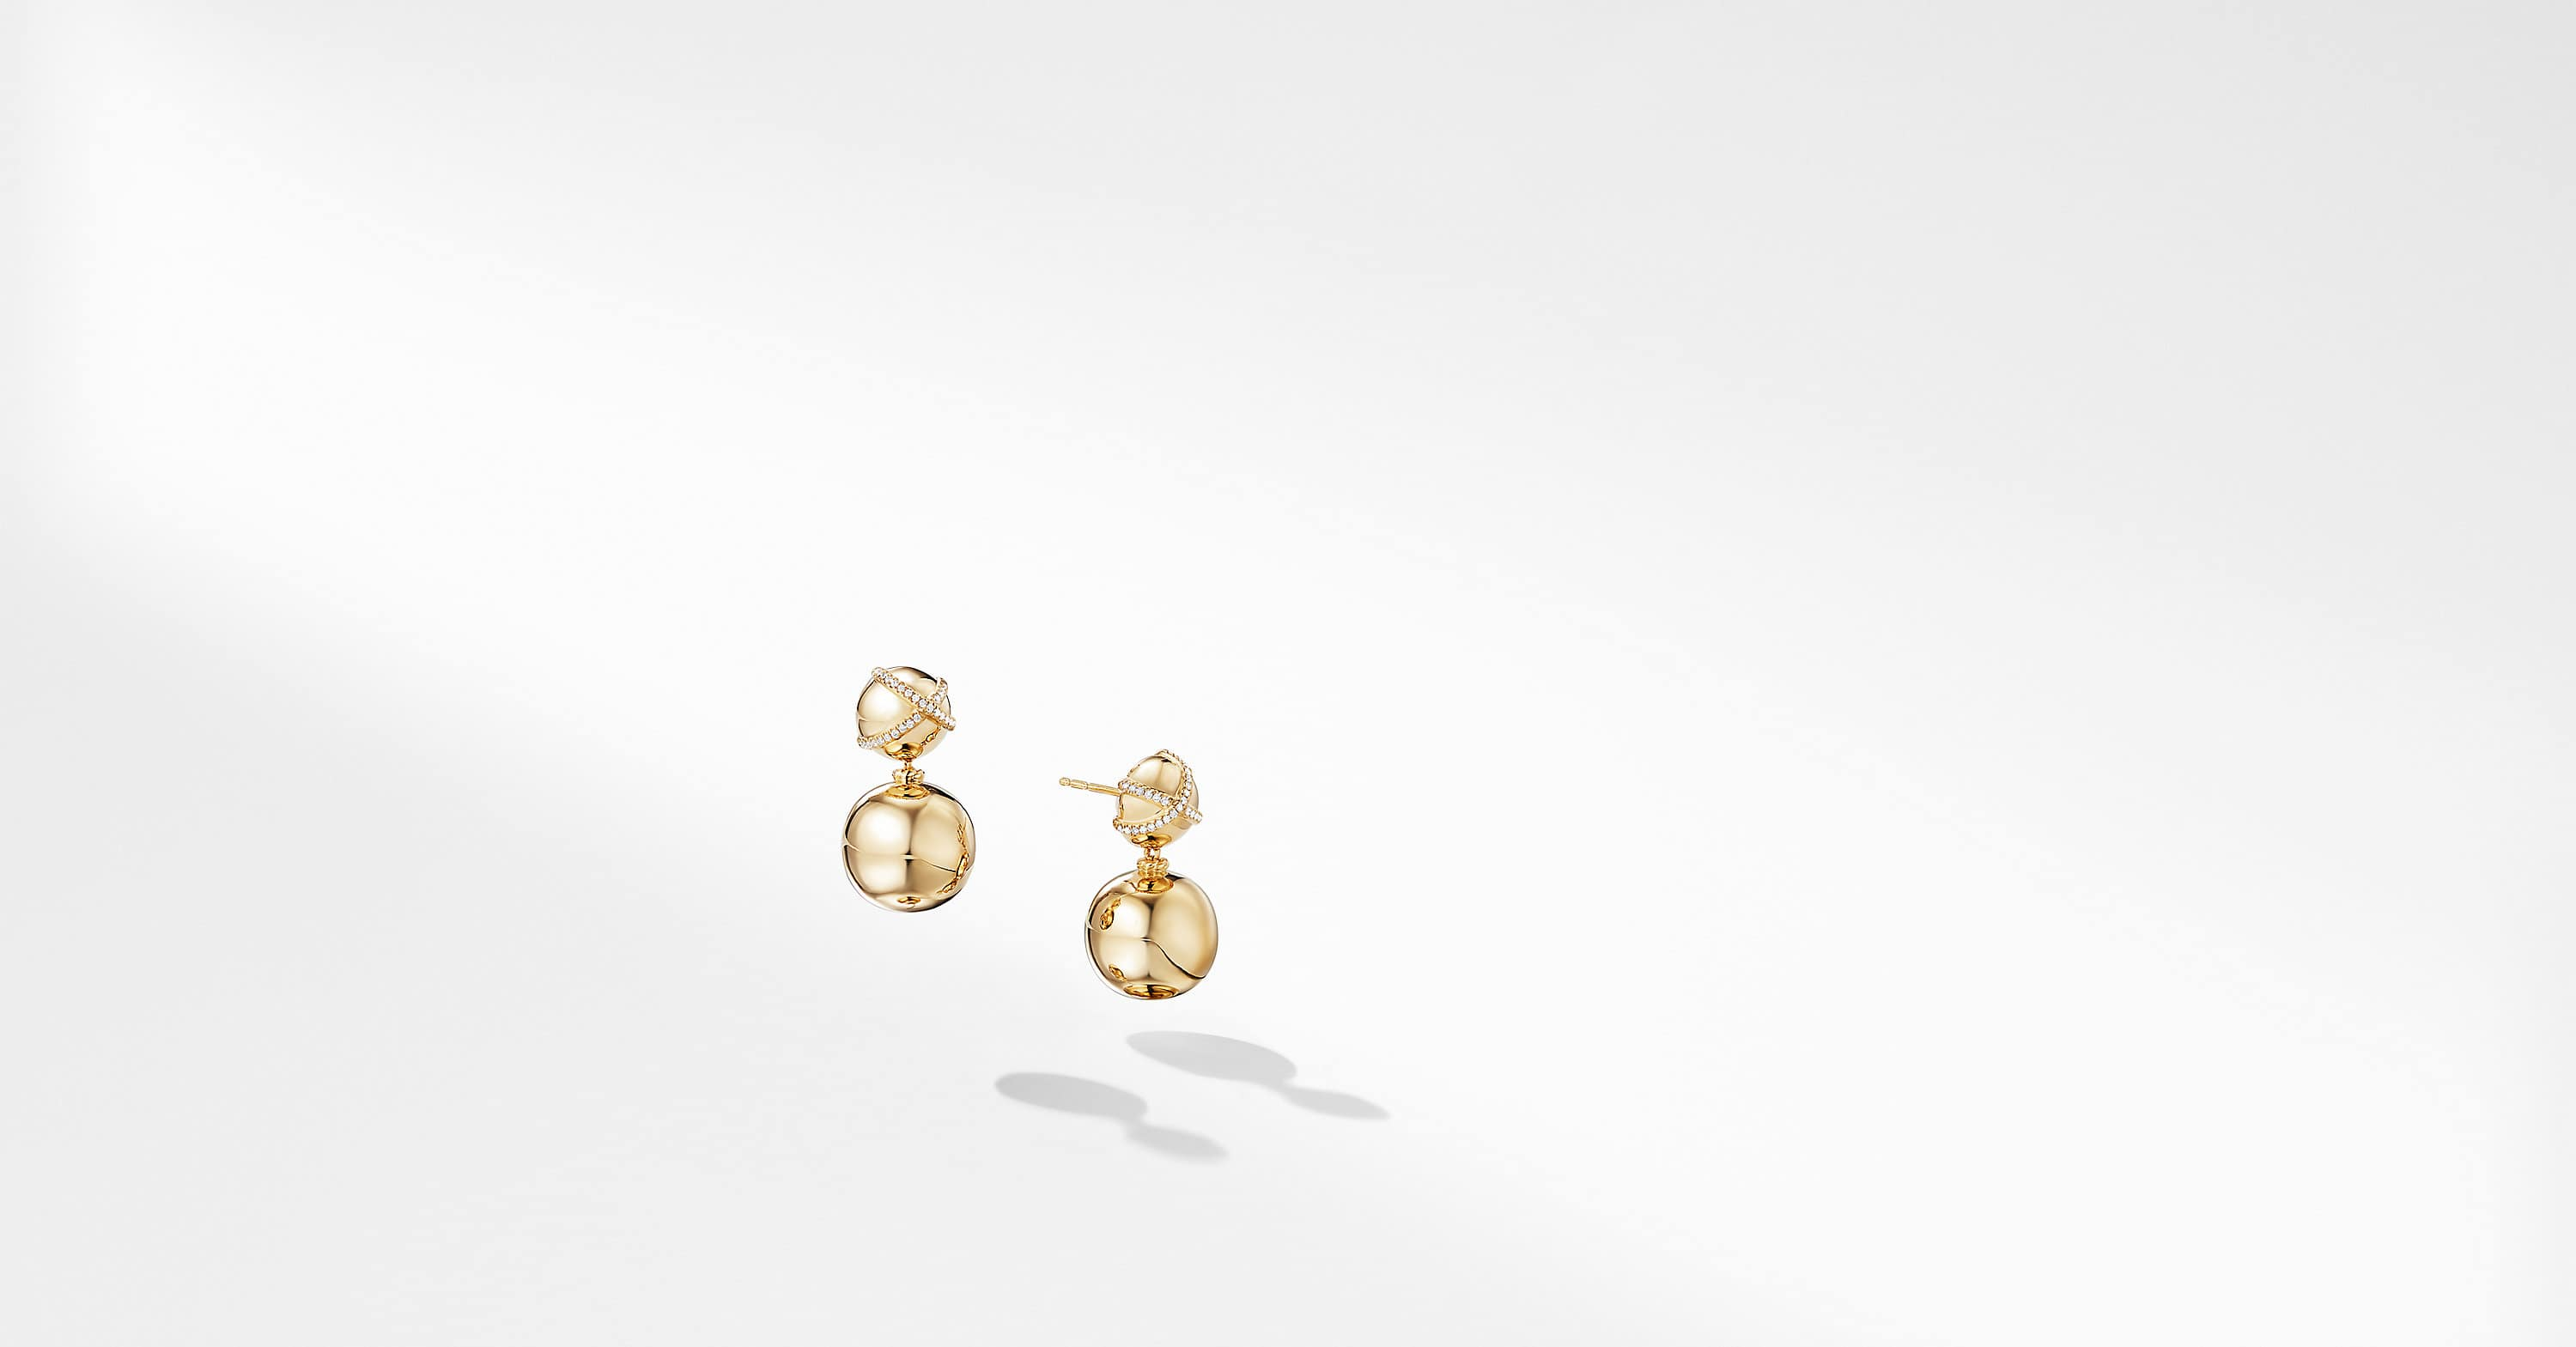 Solari Pave Wrap Double Drop Earrings with Diamonds in 18K Gold